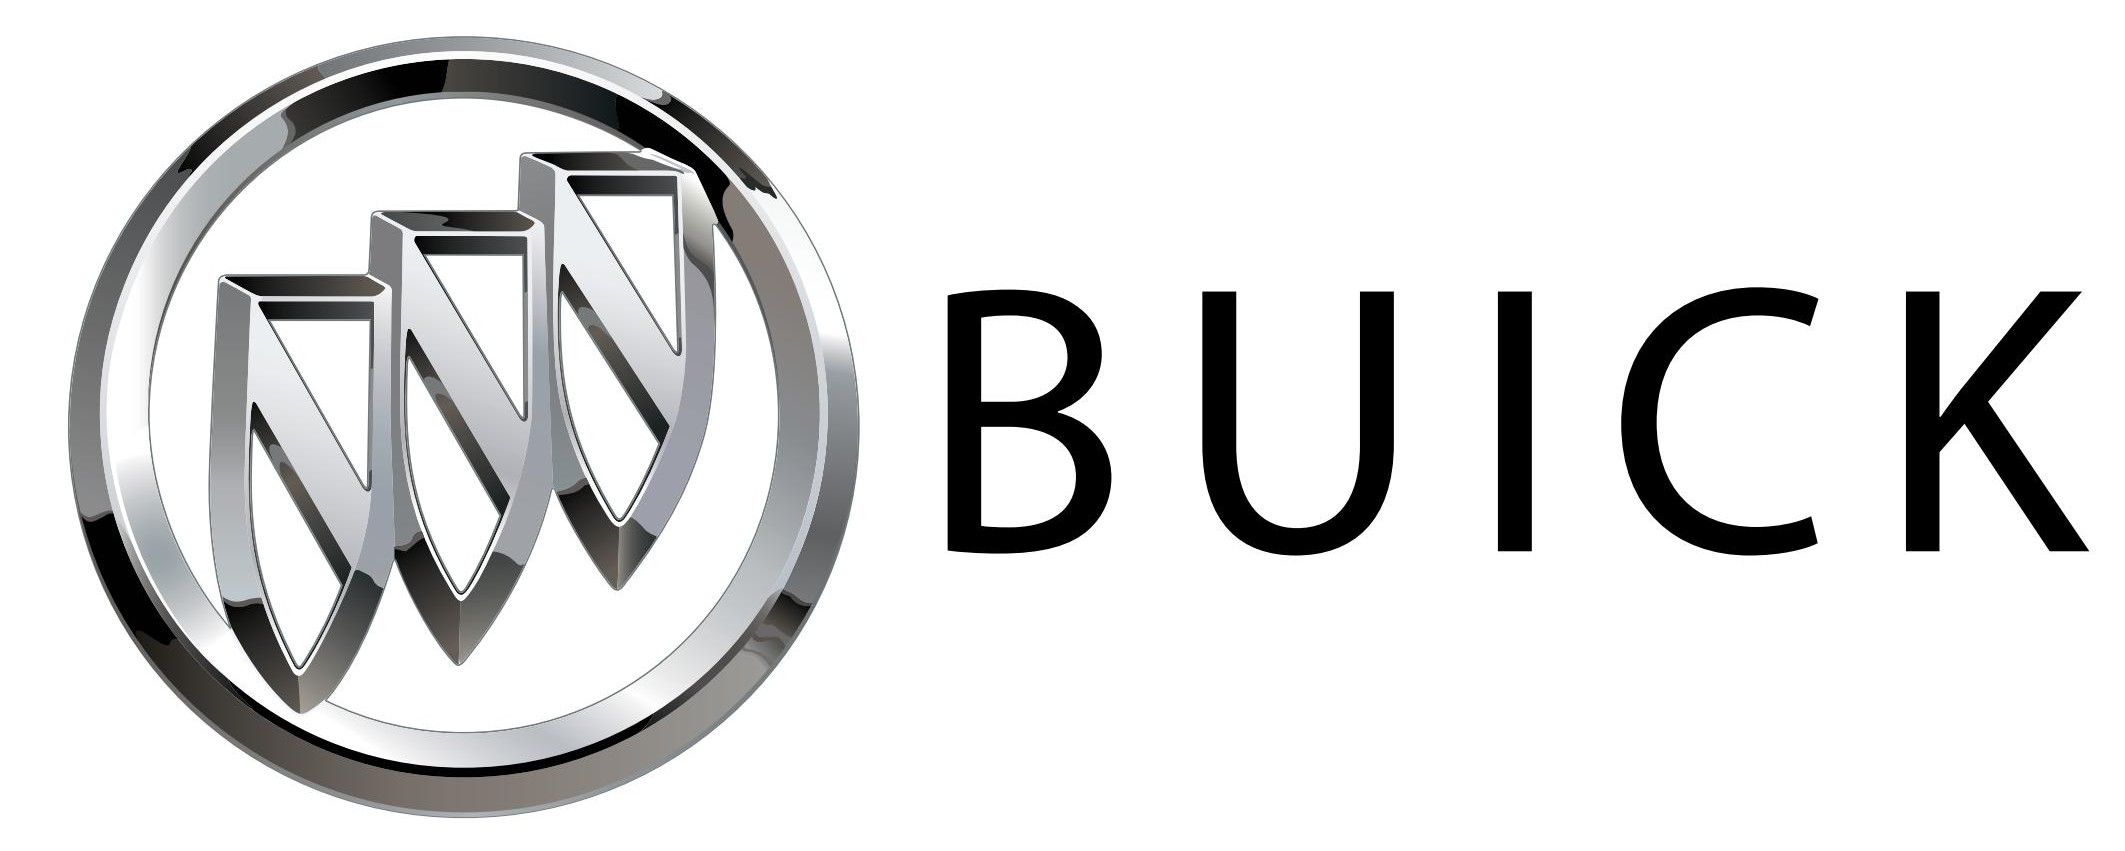 Logo Buick Black Png - Buick Is A Premium Brand Of General Motors (Gm)., Transparent background PNG HD thumbnail